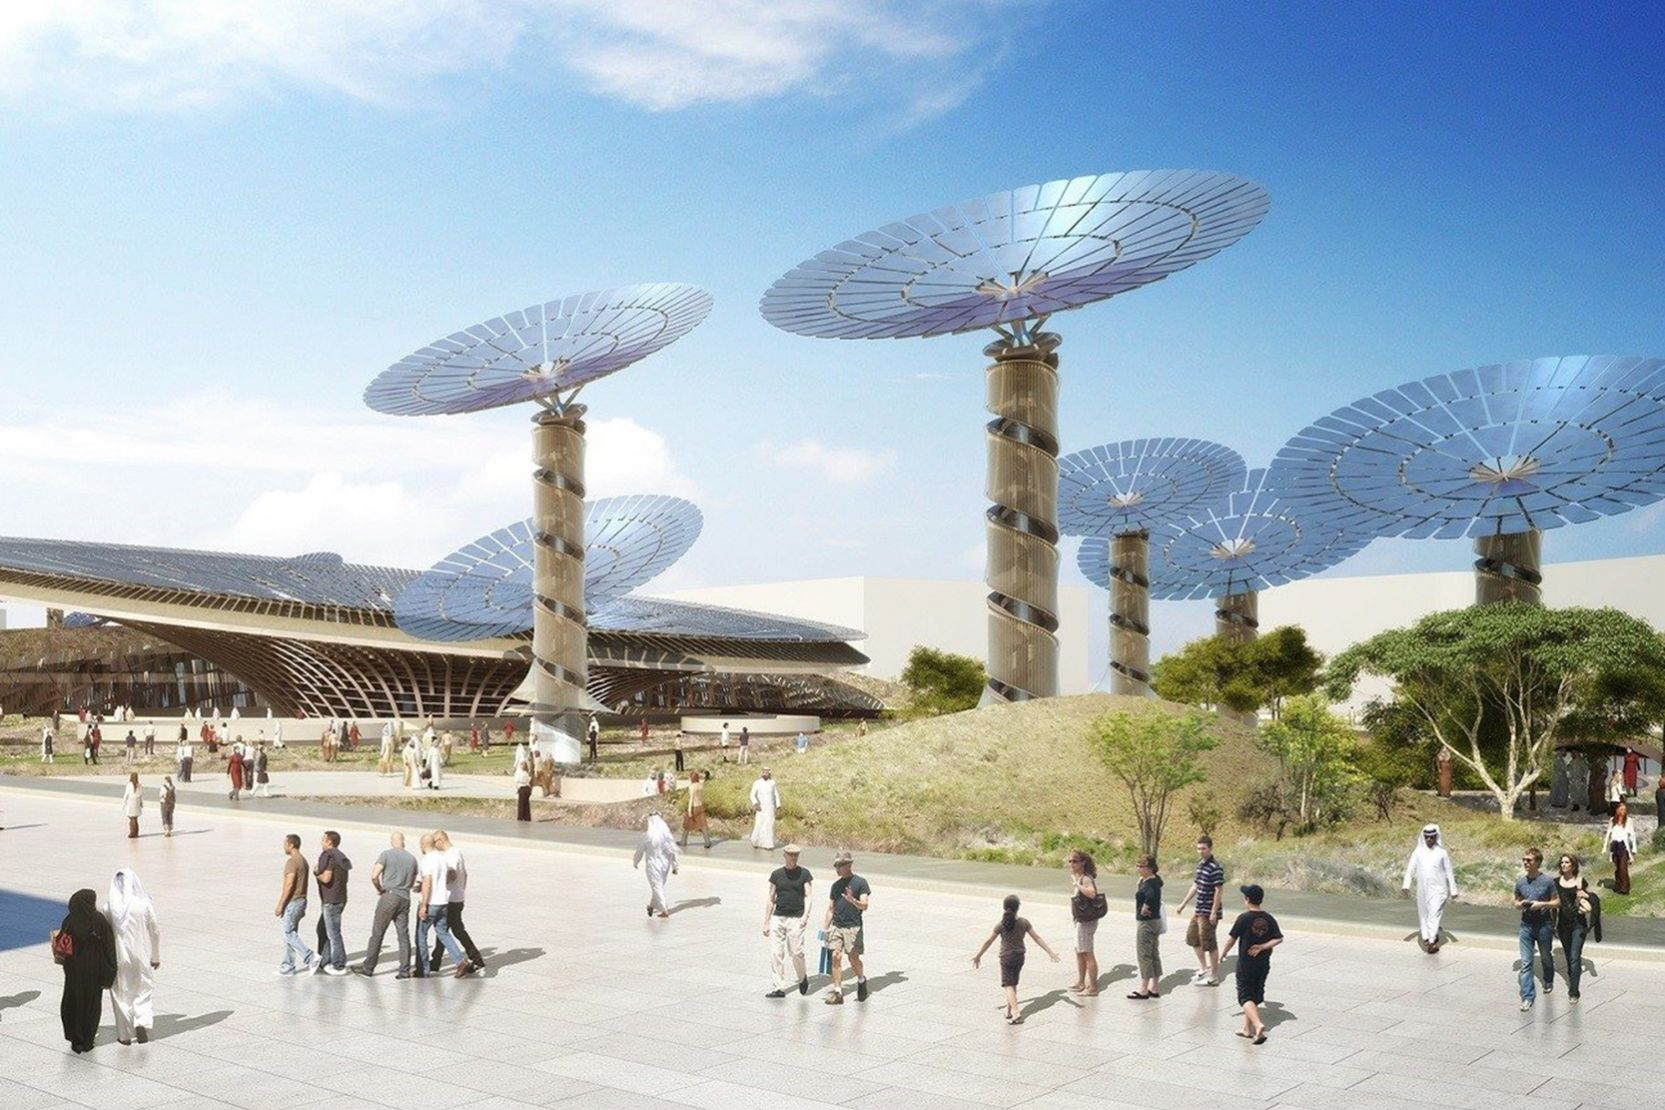 Expo 2020 Distrct, Dubai, artist's impression